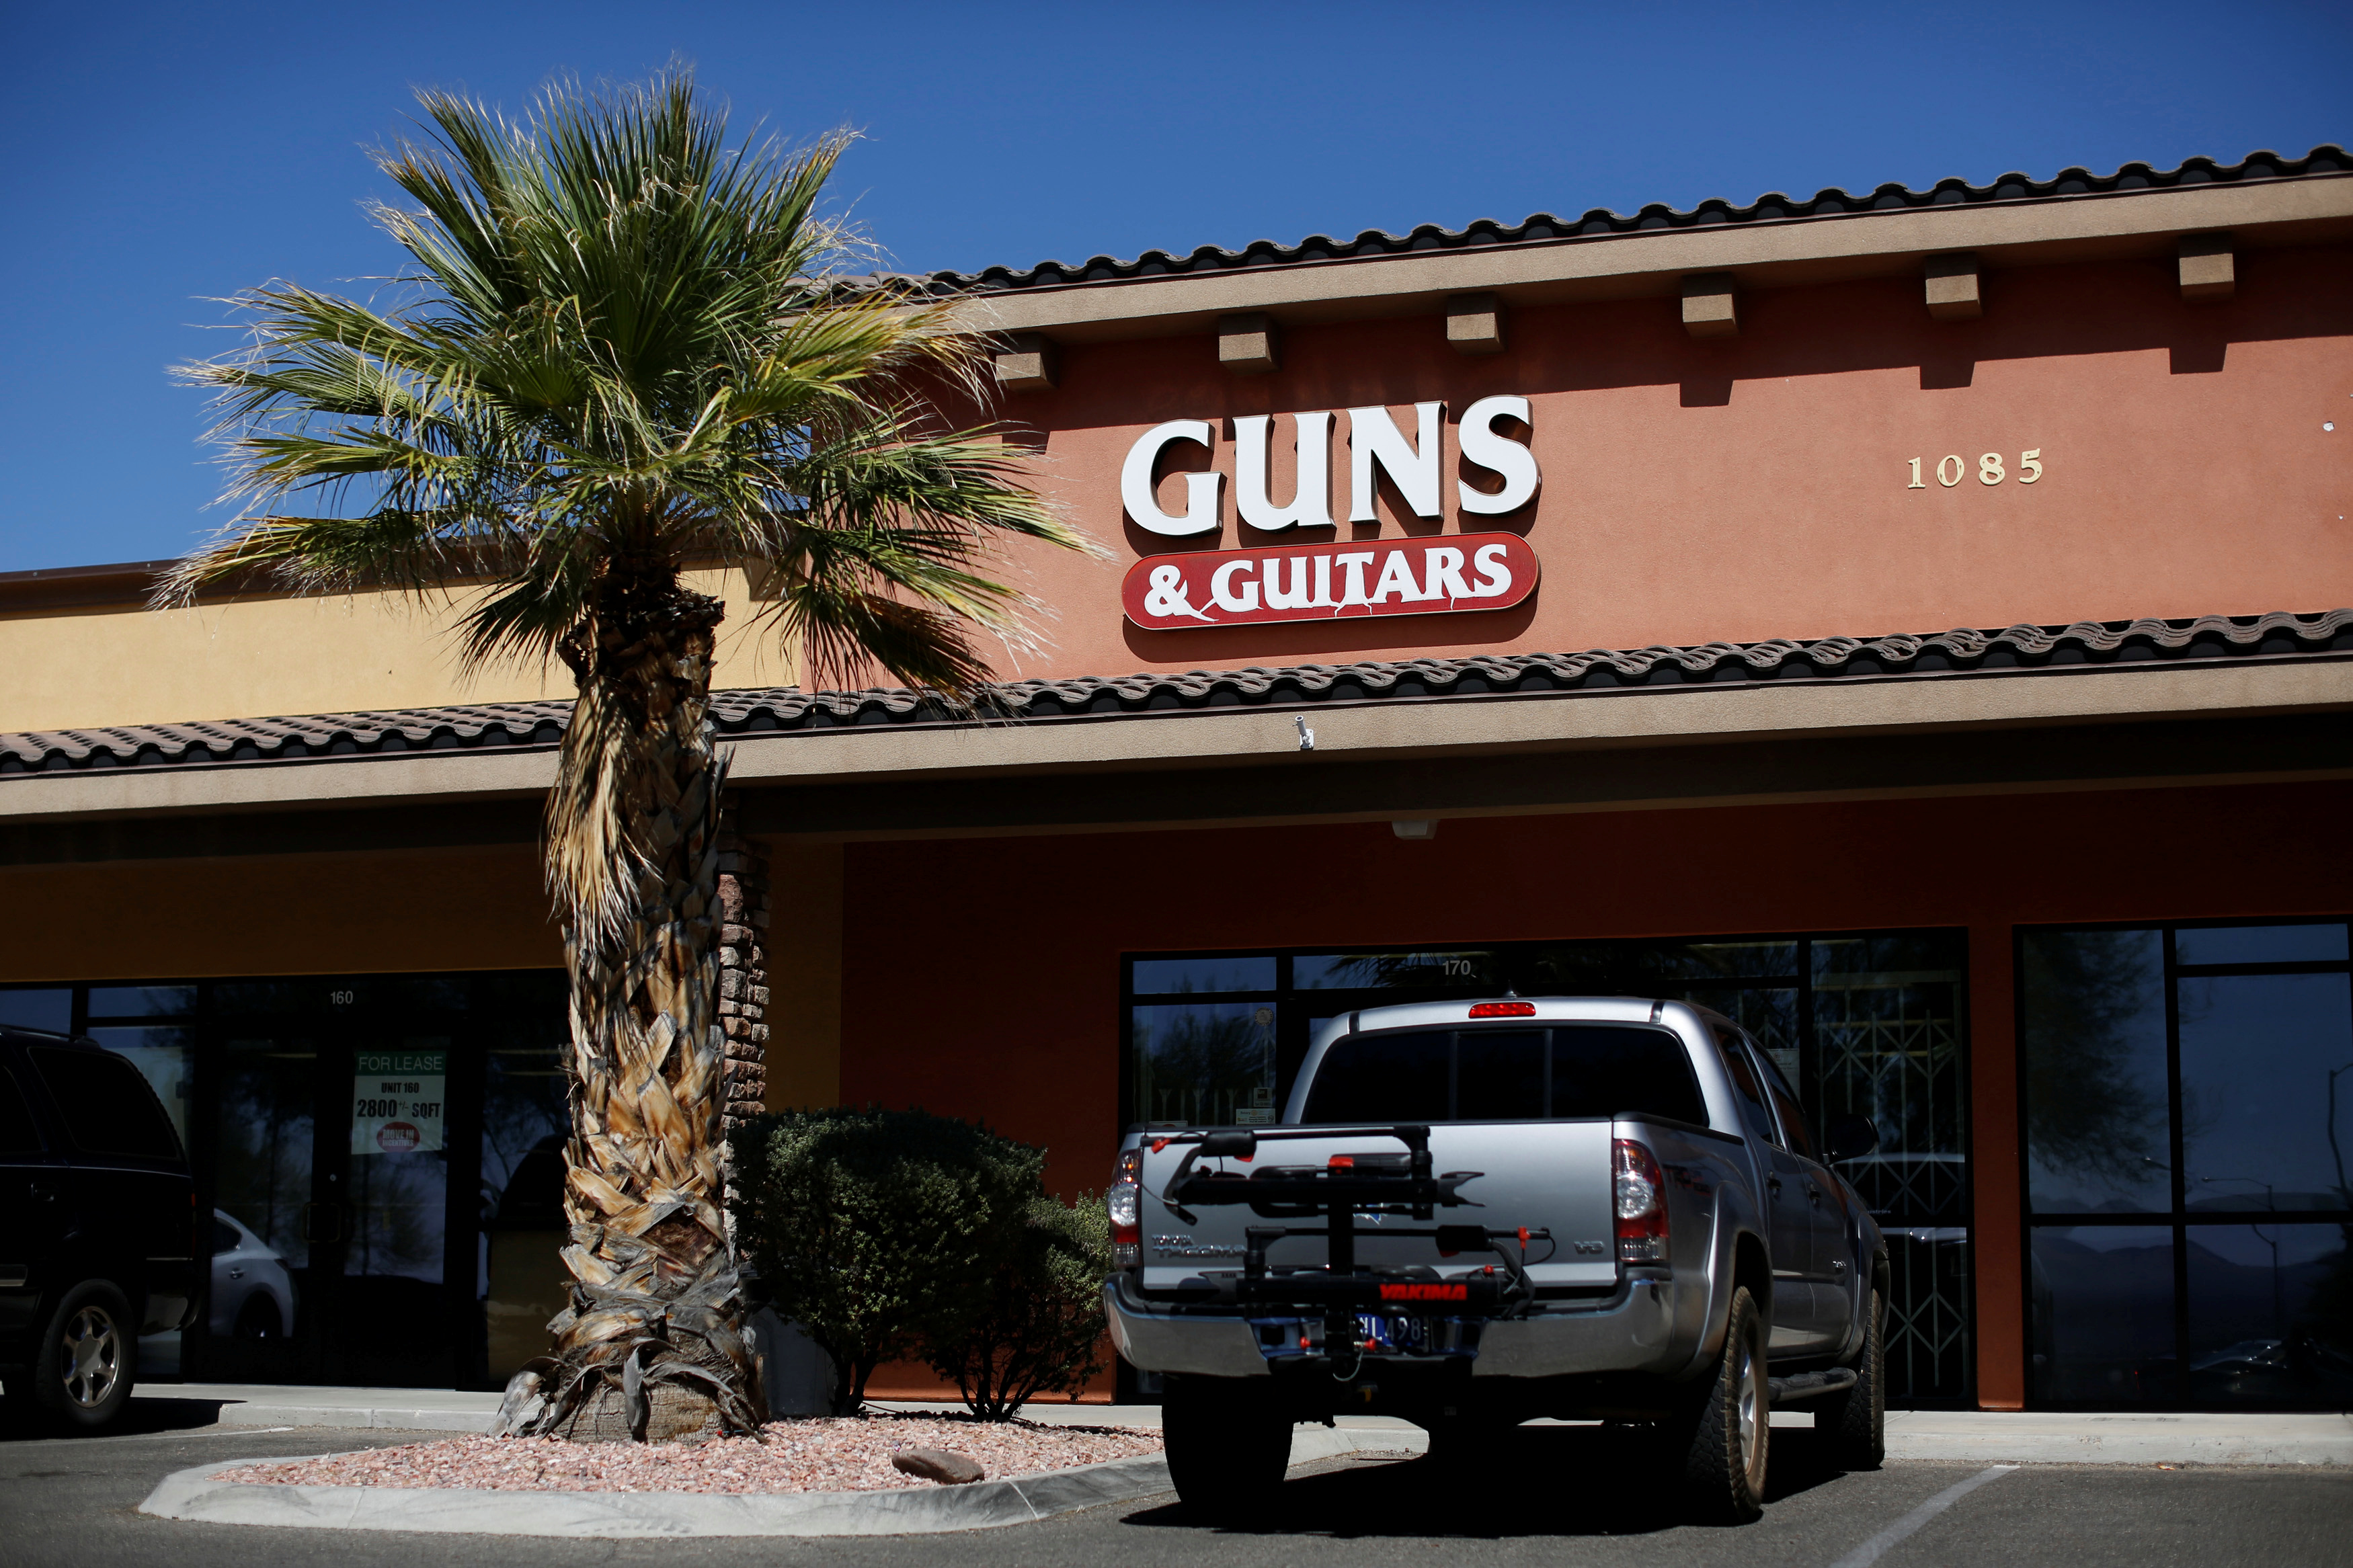 The Guns & Guitars shop where Stephen Paddock, the gunman who attacked the Route 91 Harvest Country Music Festival in a mass shooting in Las Vegas, was a customer, is pictured in Mesquite, Nevada, U.S., October 3, 2017. REUTERS/Chris Wattie - RC1B7CC90600